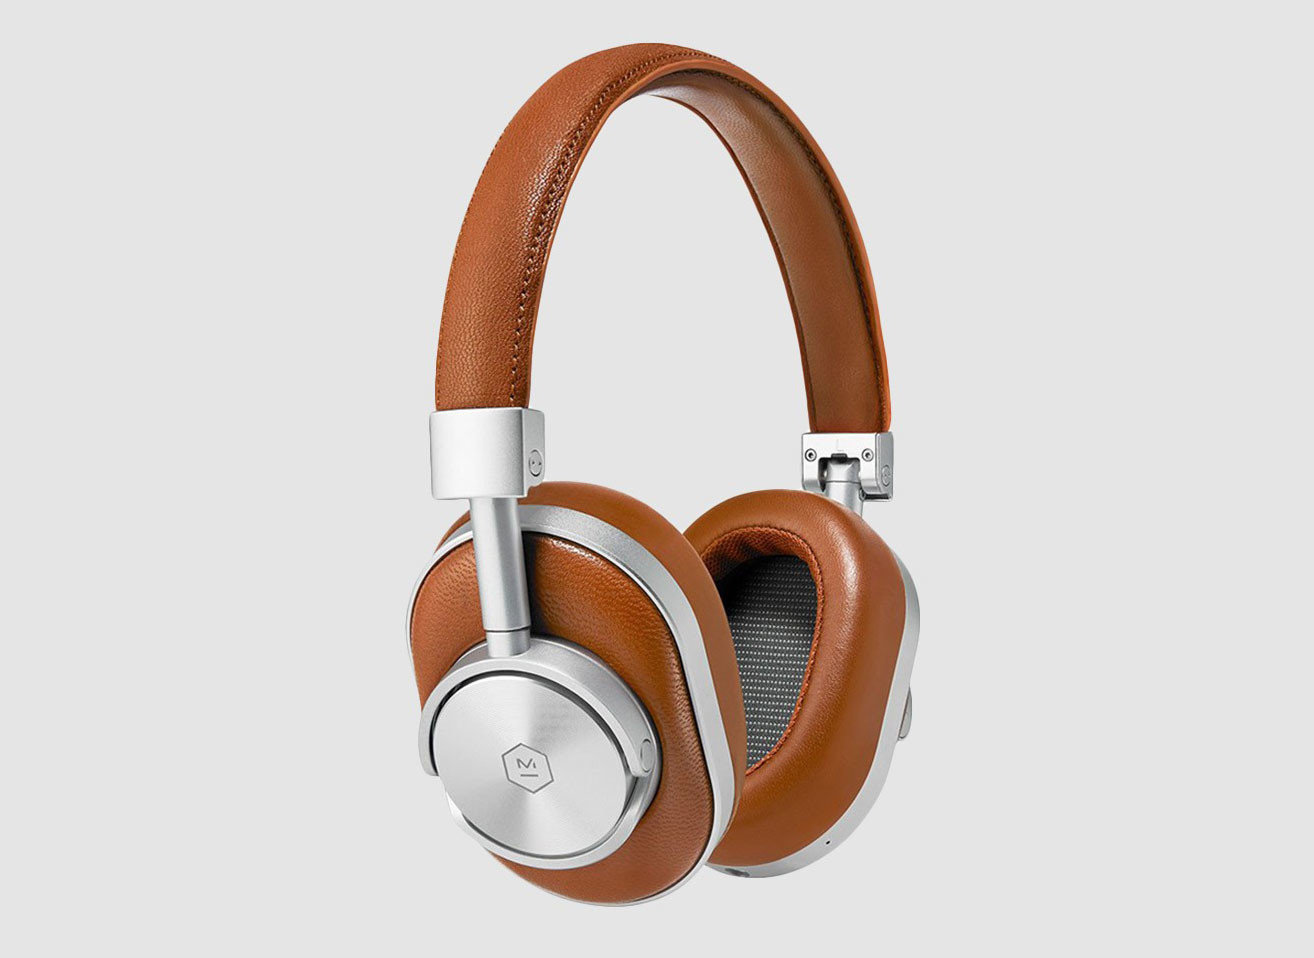 Packing Tips Style + Design Travel Shop headphones audio equipment technology audio product design electronic device product headset